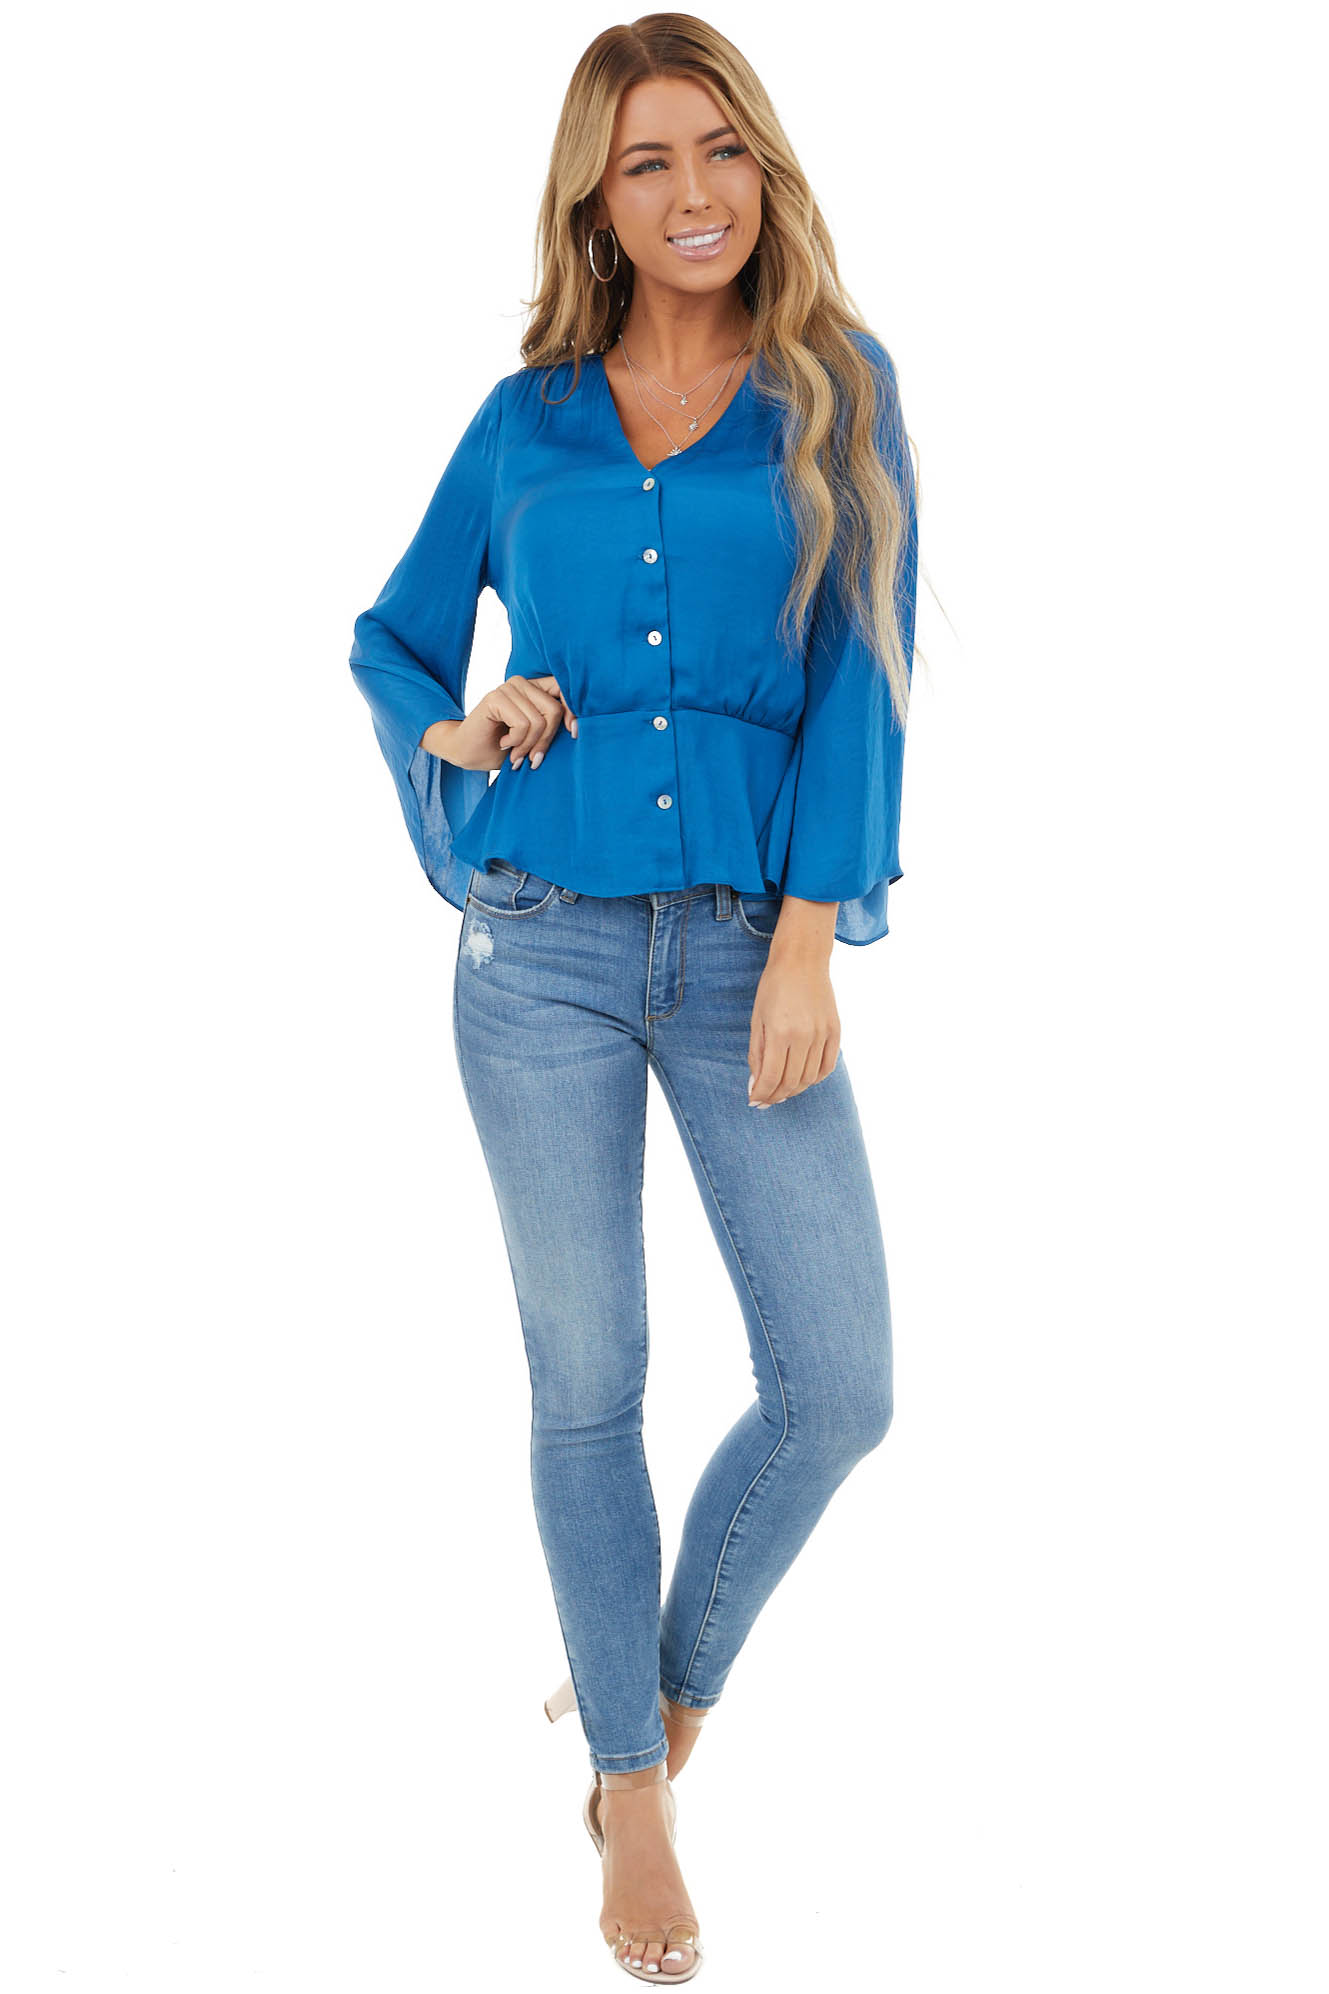 Ocean Blue Button Up Peplum Top with 3/4 Flutter Sleeves